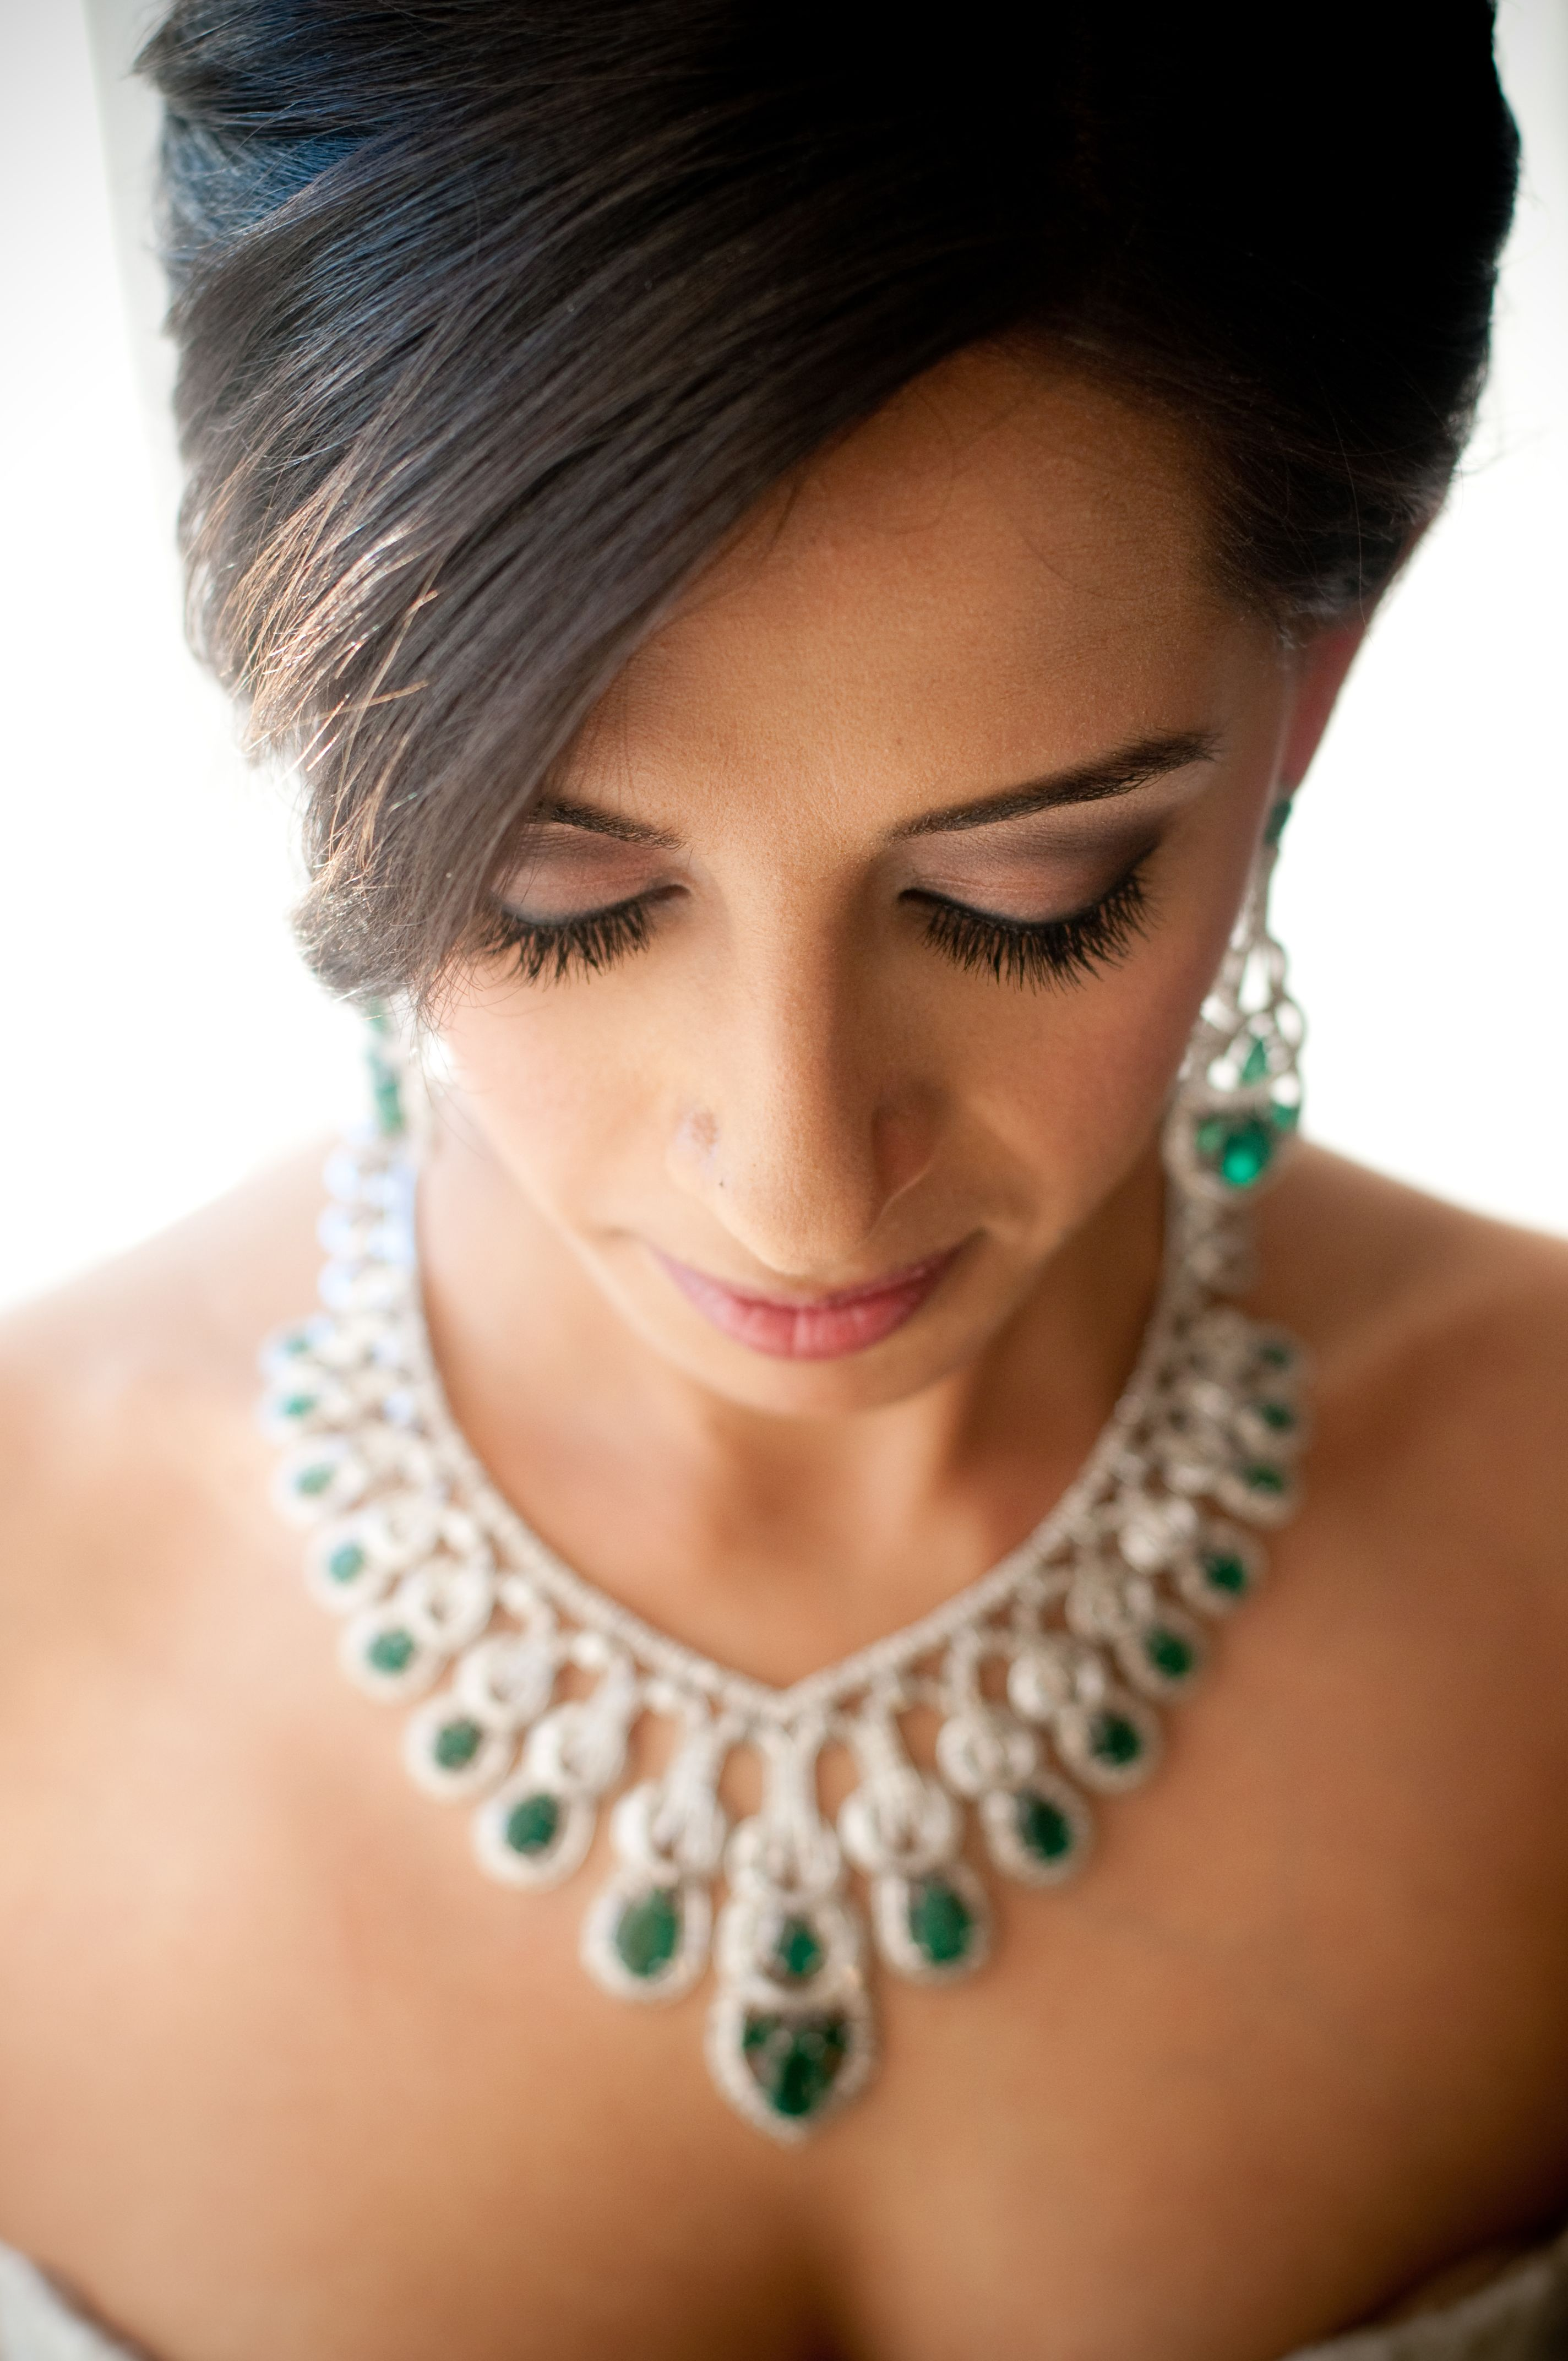 Indian bride wearing green jewelry